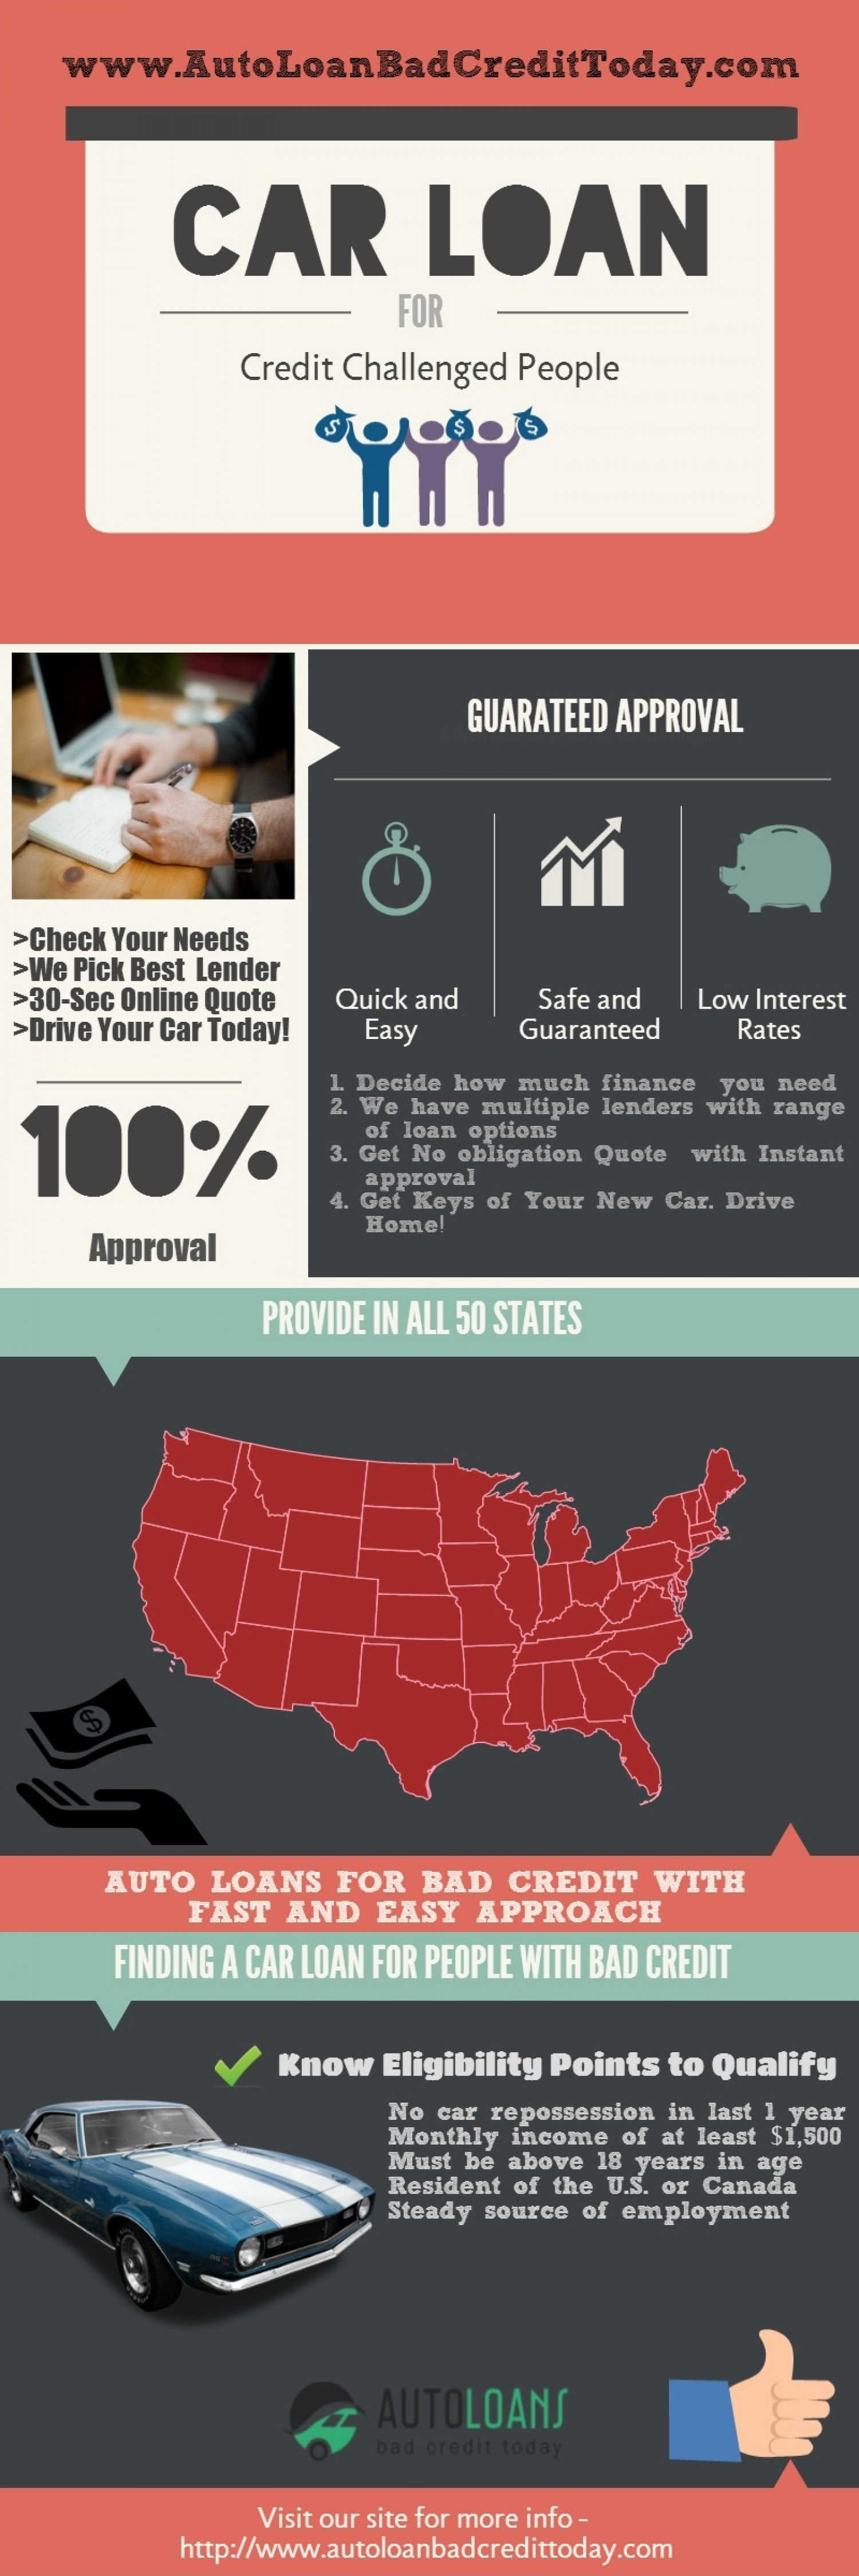 Guaranteed Approval Car Loans for Credit Challenged People Infographic